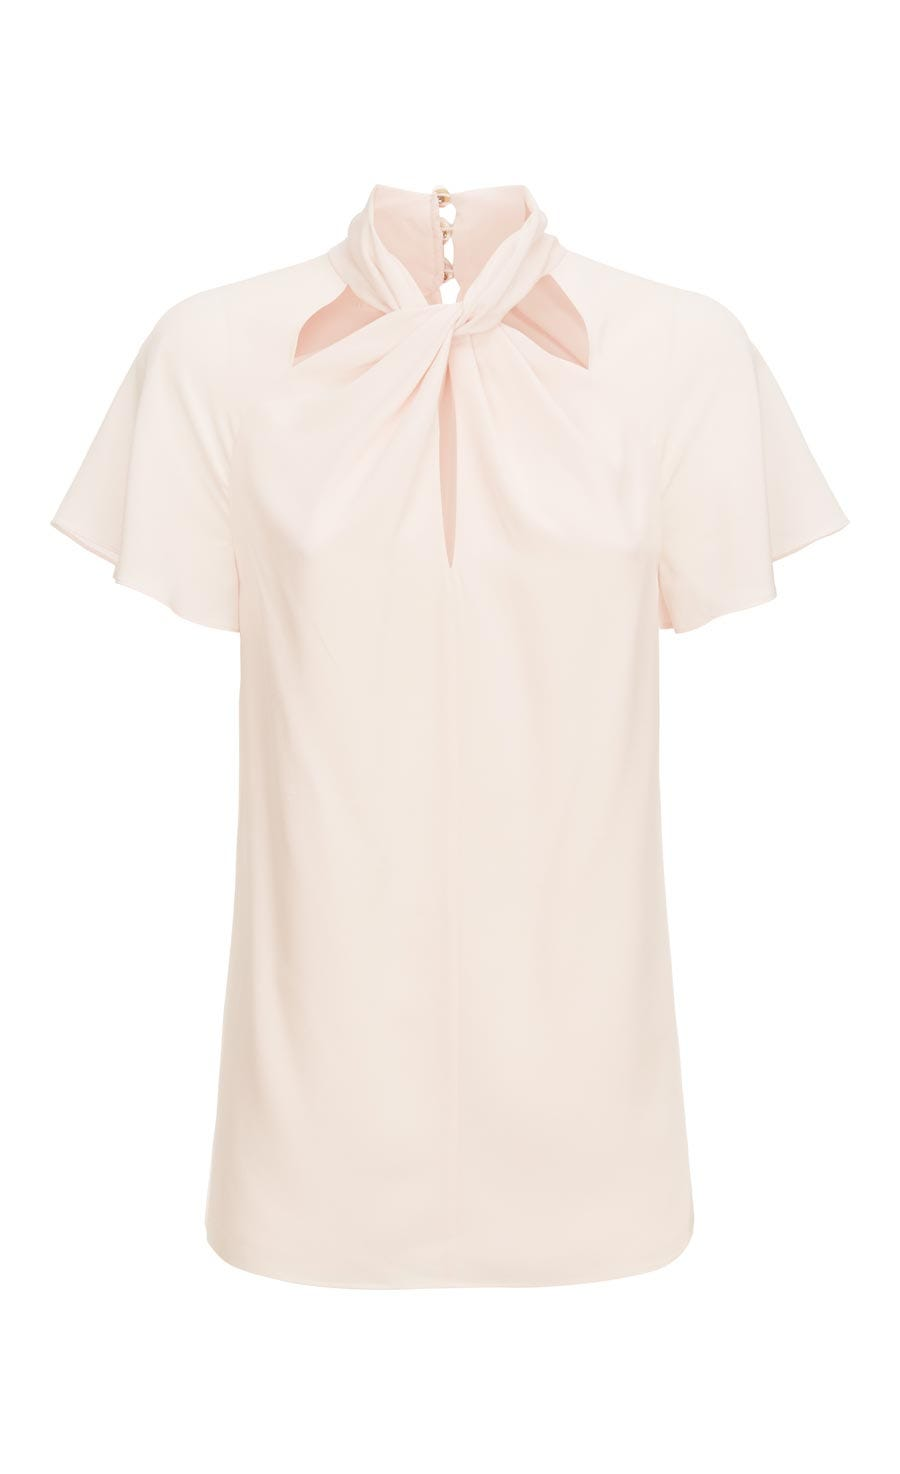 Purity Twisted Blouse, Shell